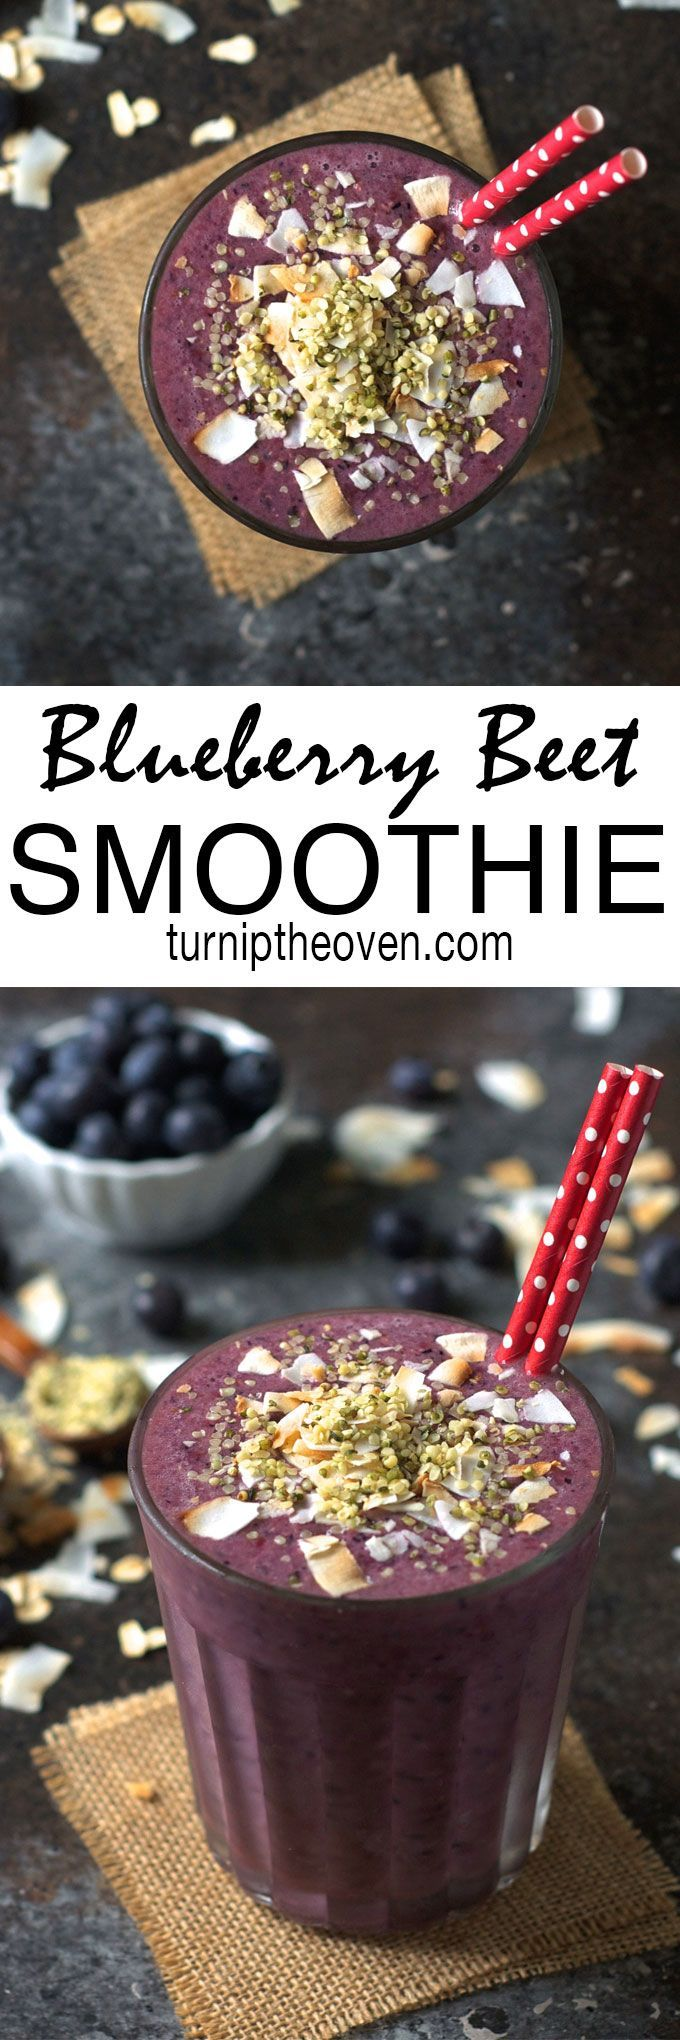 Start your day off right with this sweet, creamy blueberry beet smoothie with hemp seeds and toasted coconut. It tastes so much like a milkshake, you would never guess it is gluten-free, vegan, and loaded with antioxidants!